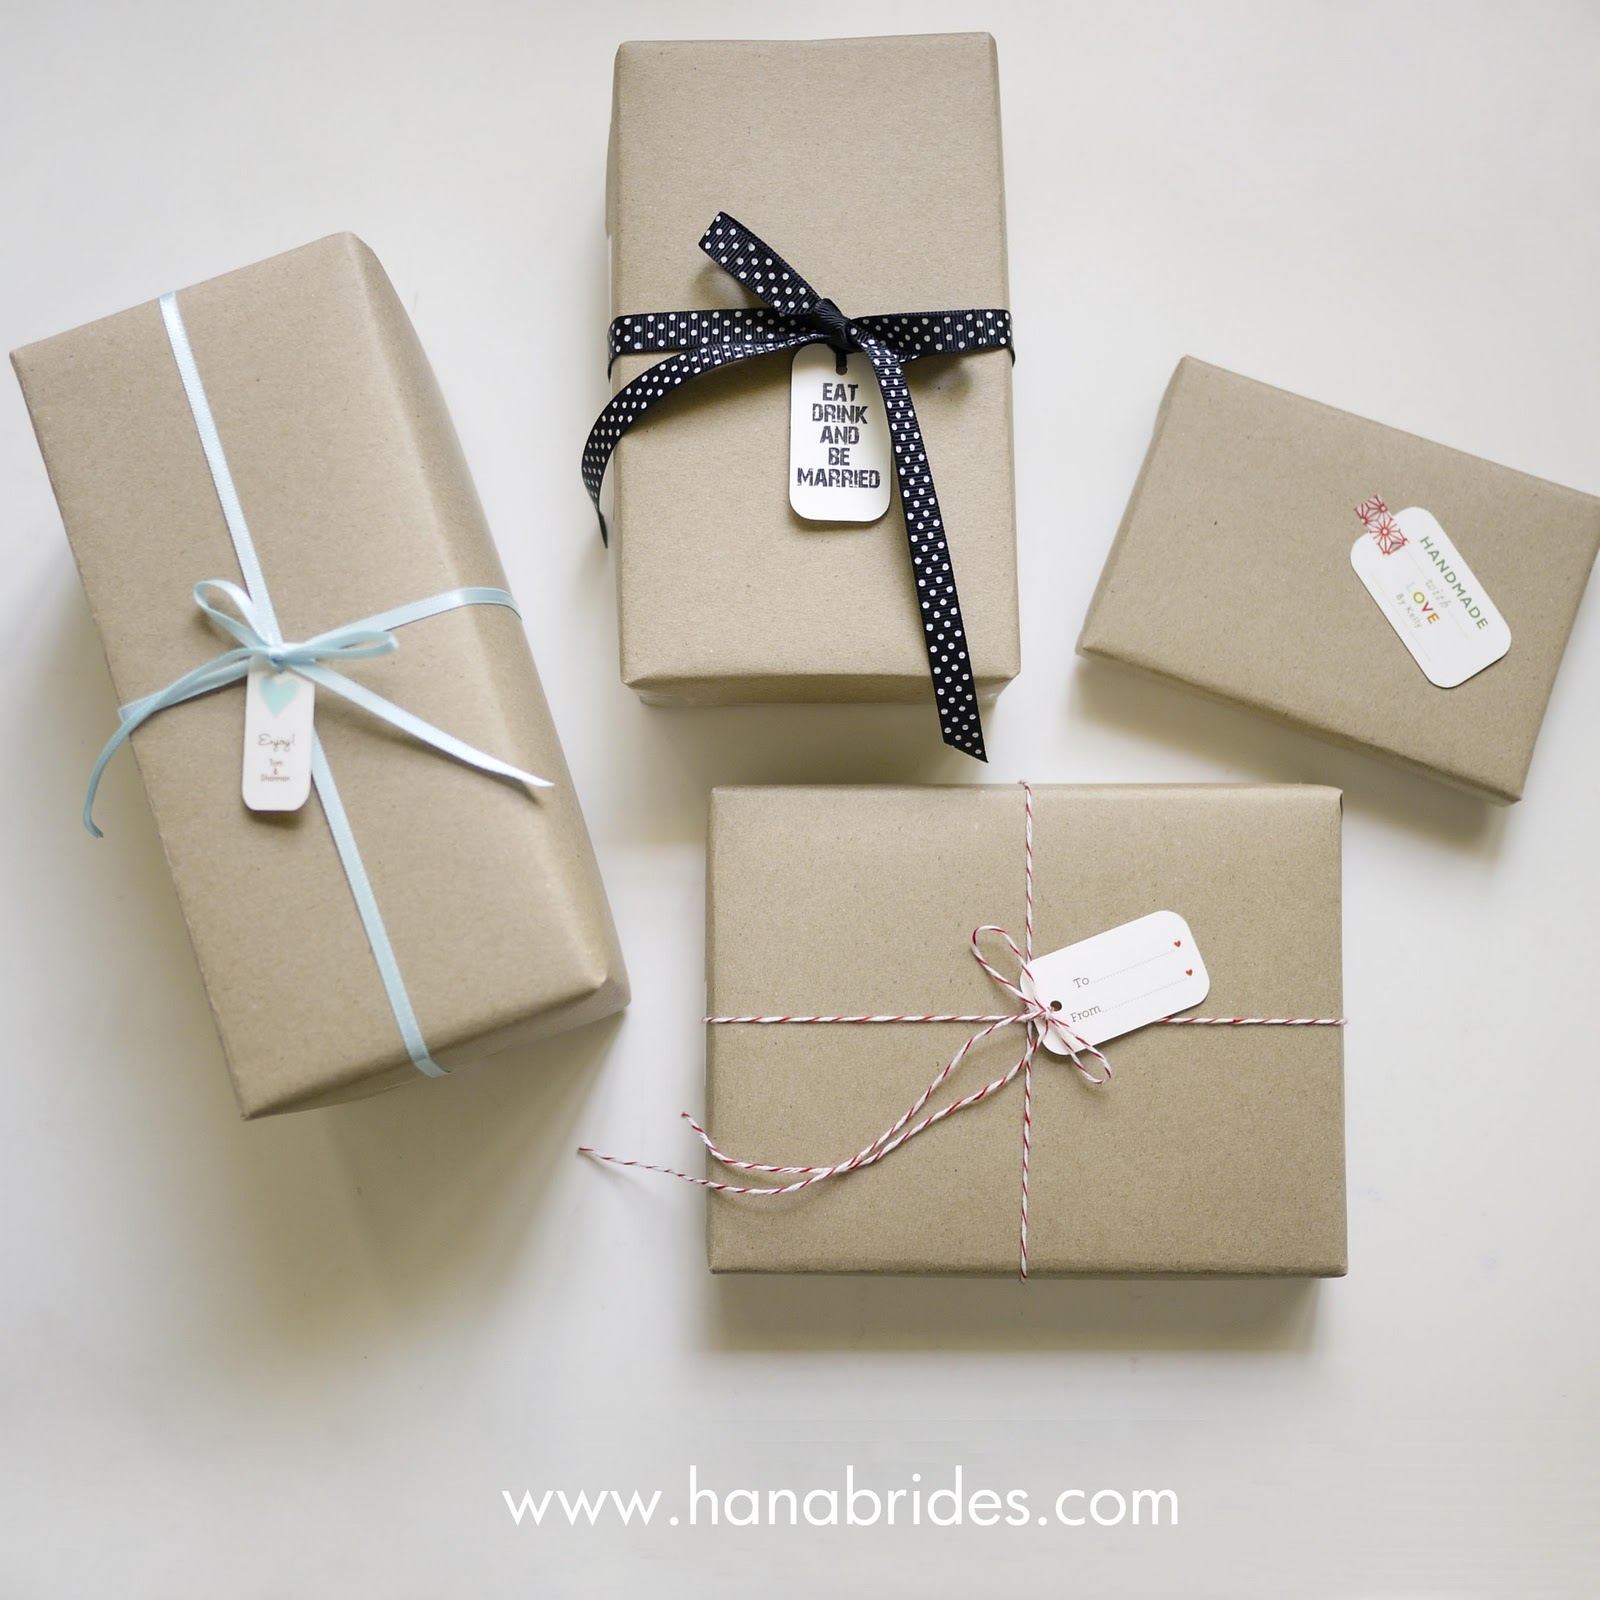 Wedding Favors Tags Singapore : Hanabrides - Singapore Wedding Ring Pillow, Magnet Favors, Gift Tags ...